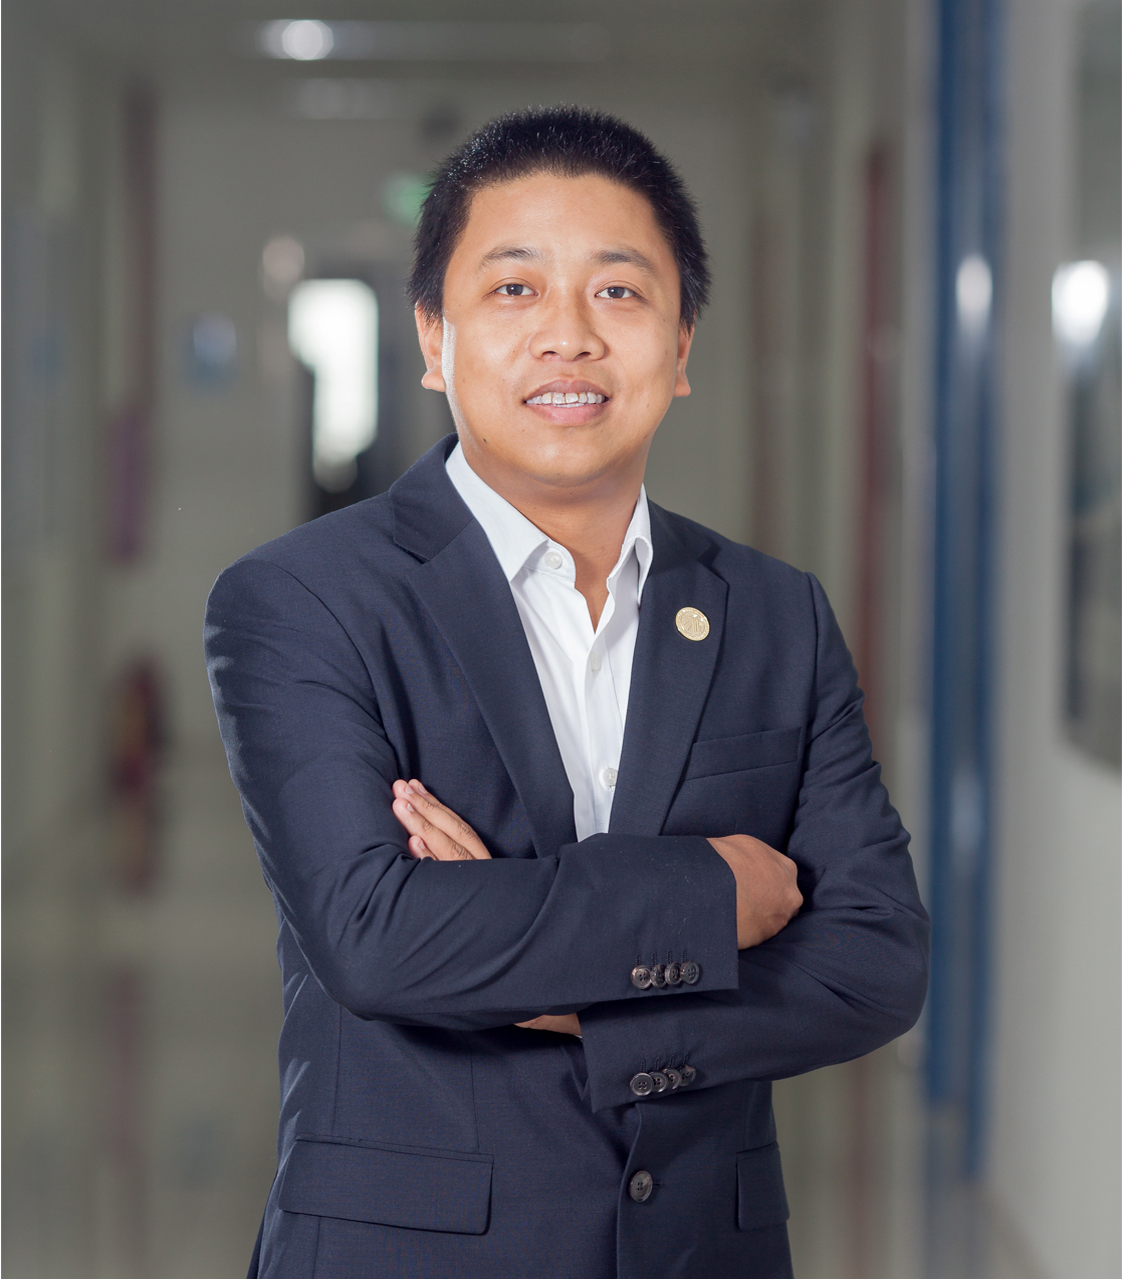 Mr. Vu Quang Hung